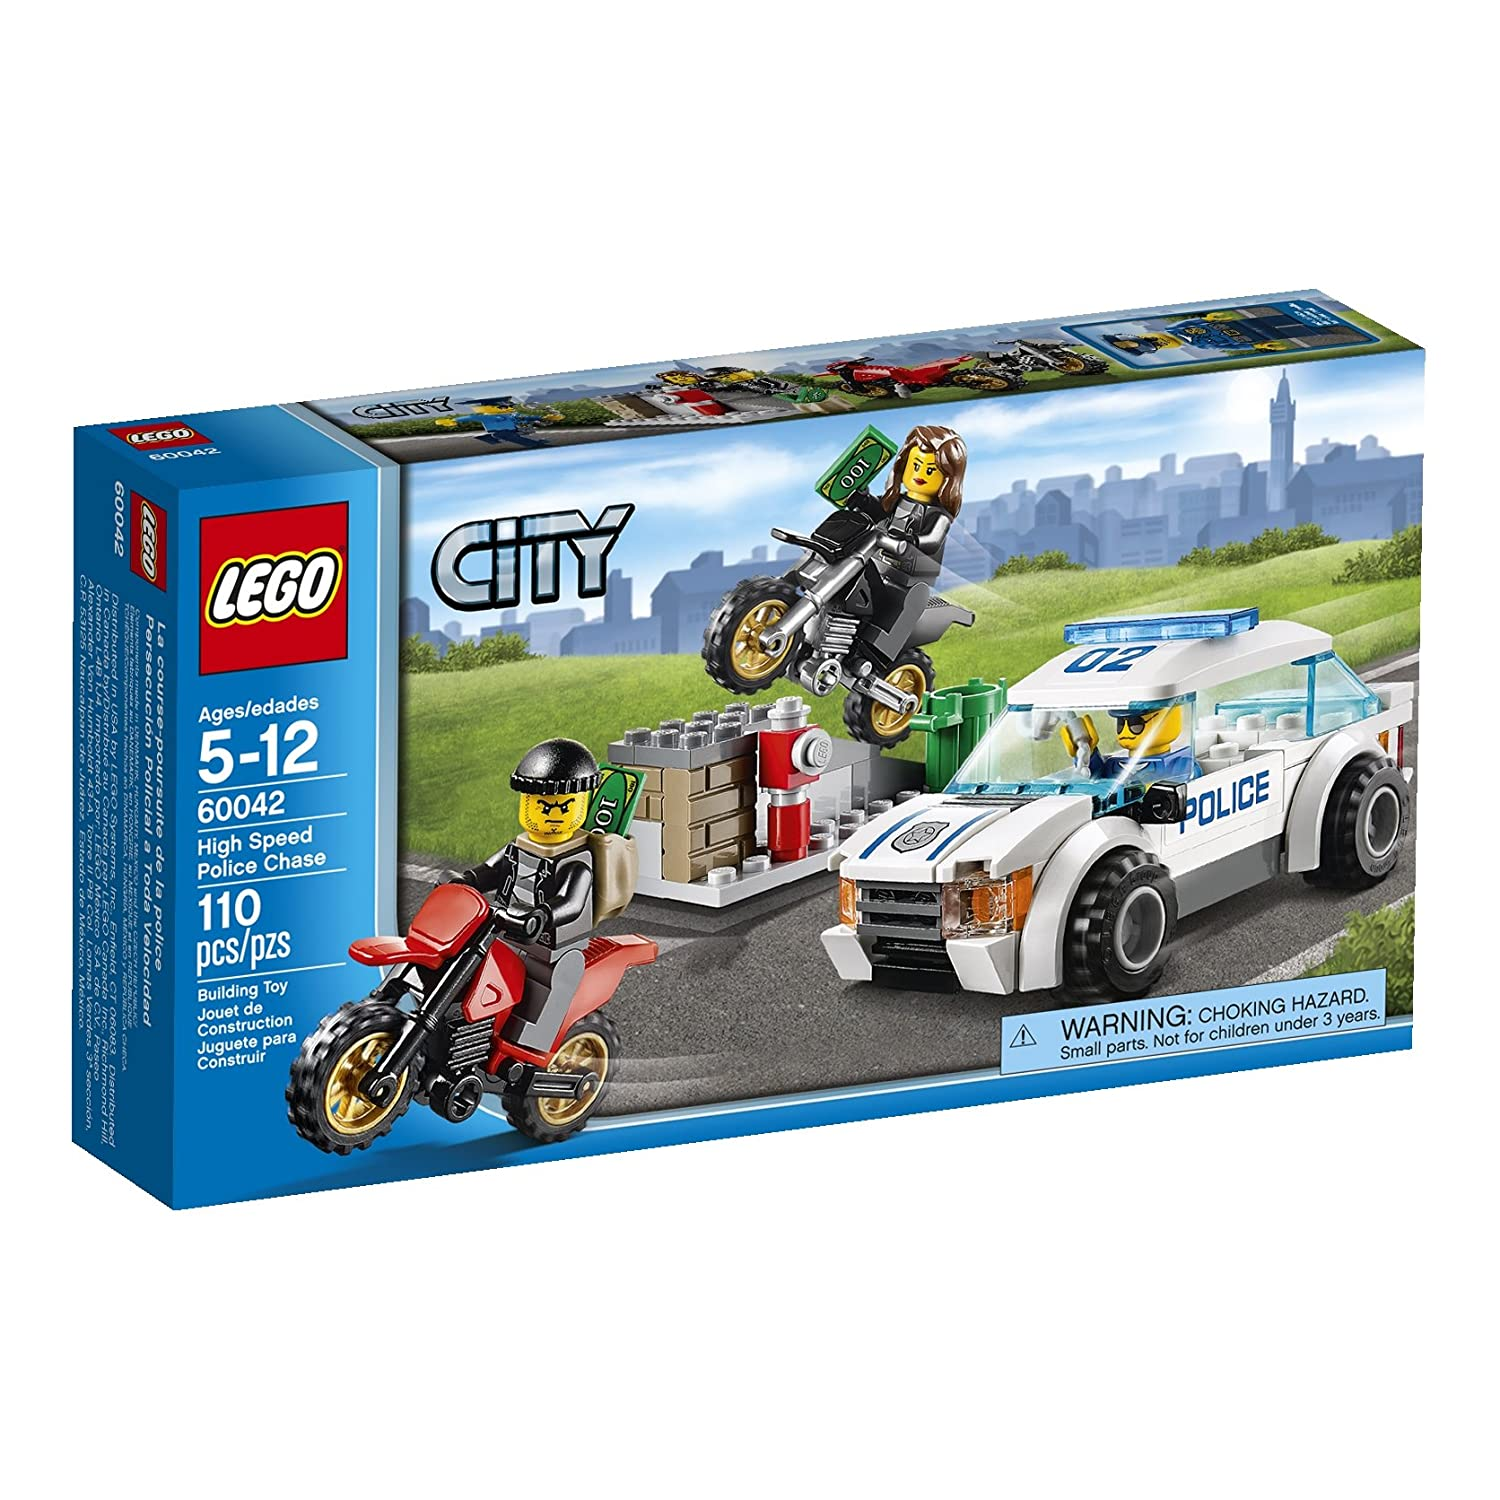 LEGO City High Speed Police Chase [60042 - 110 pcs]: Amazon.es: Juguetes y juegos